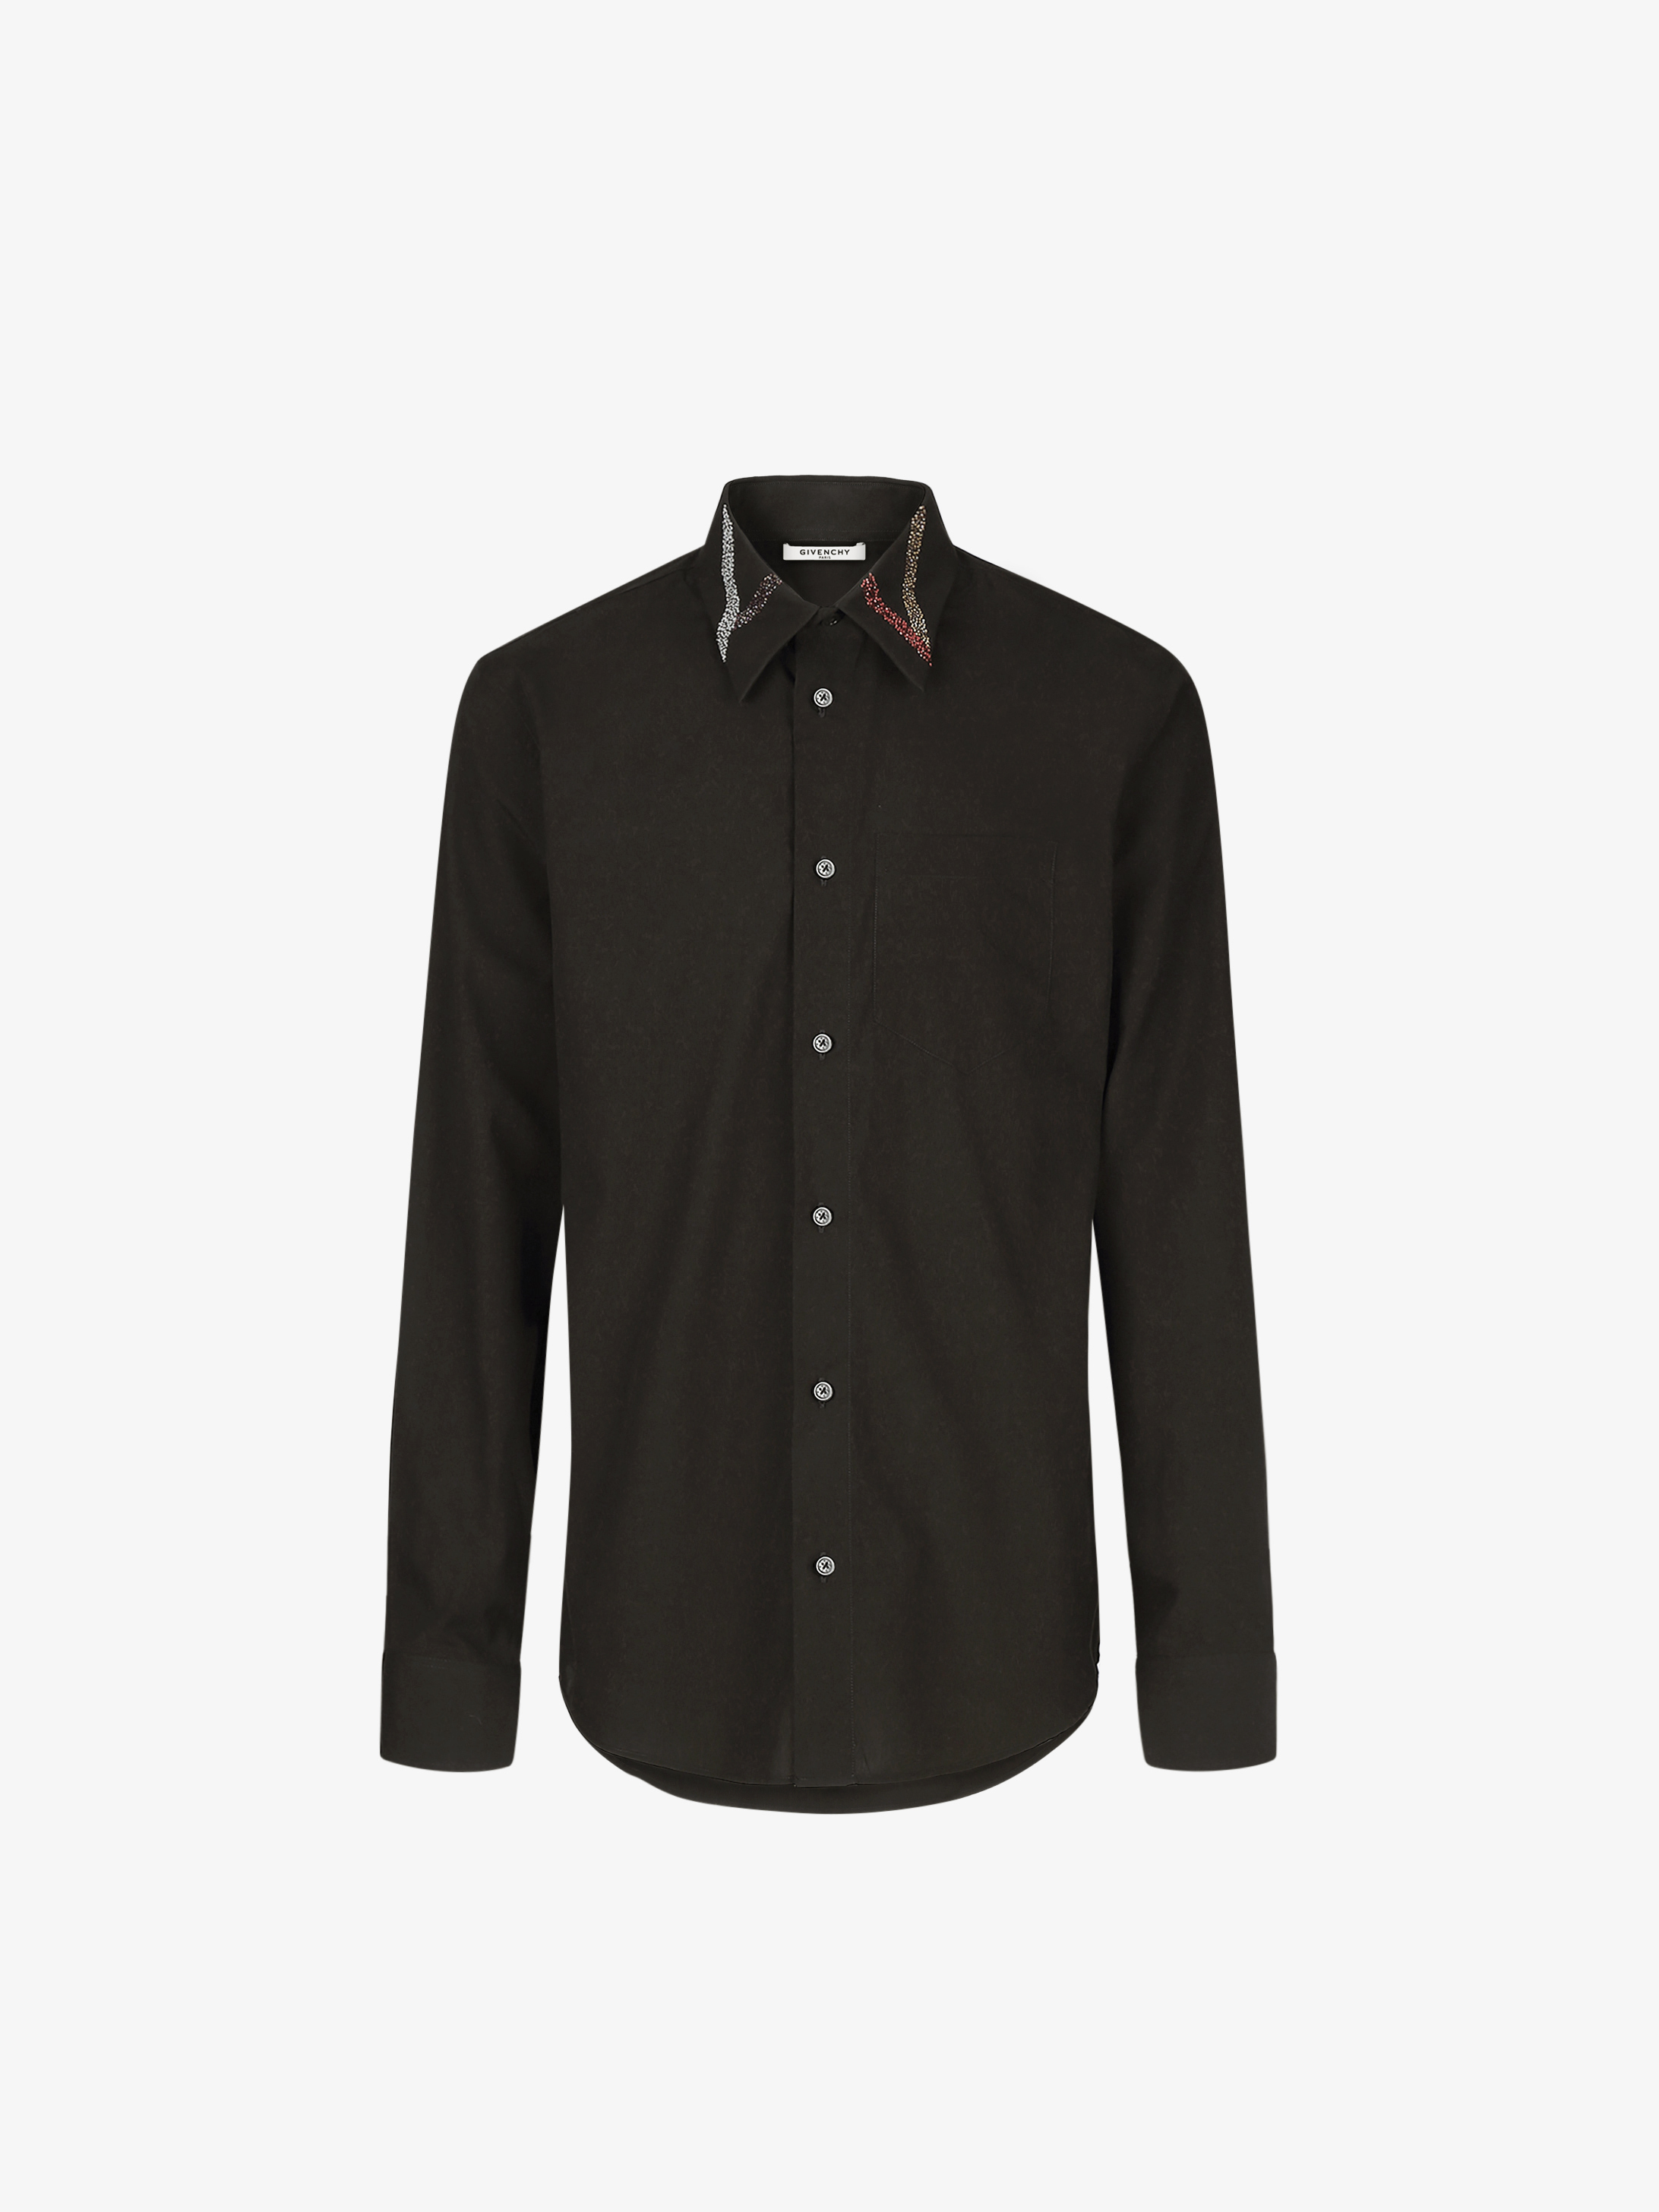 Tuxedo shirt with embroidered collar